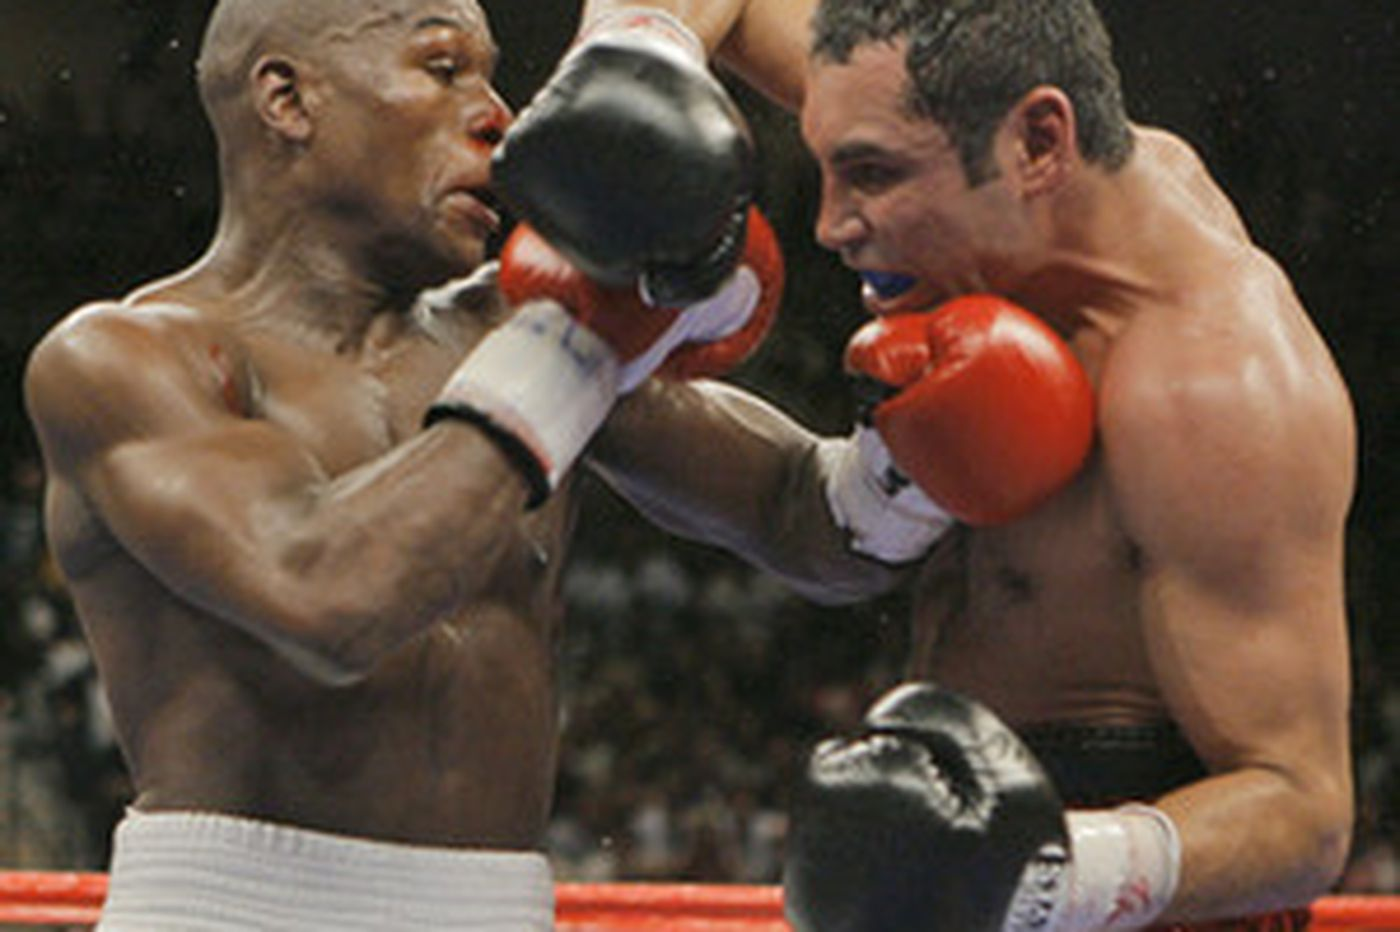 Bernard Fernandez | They saved boxing at least for one night